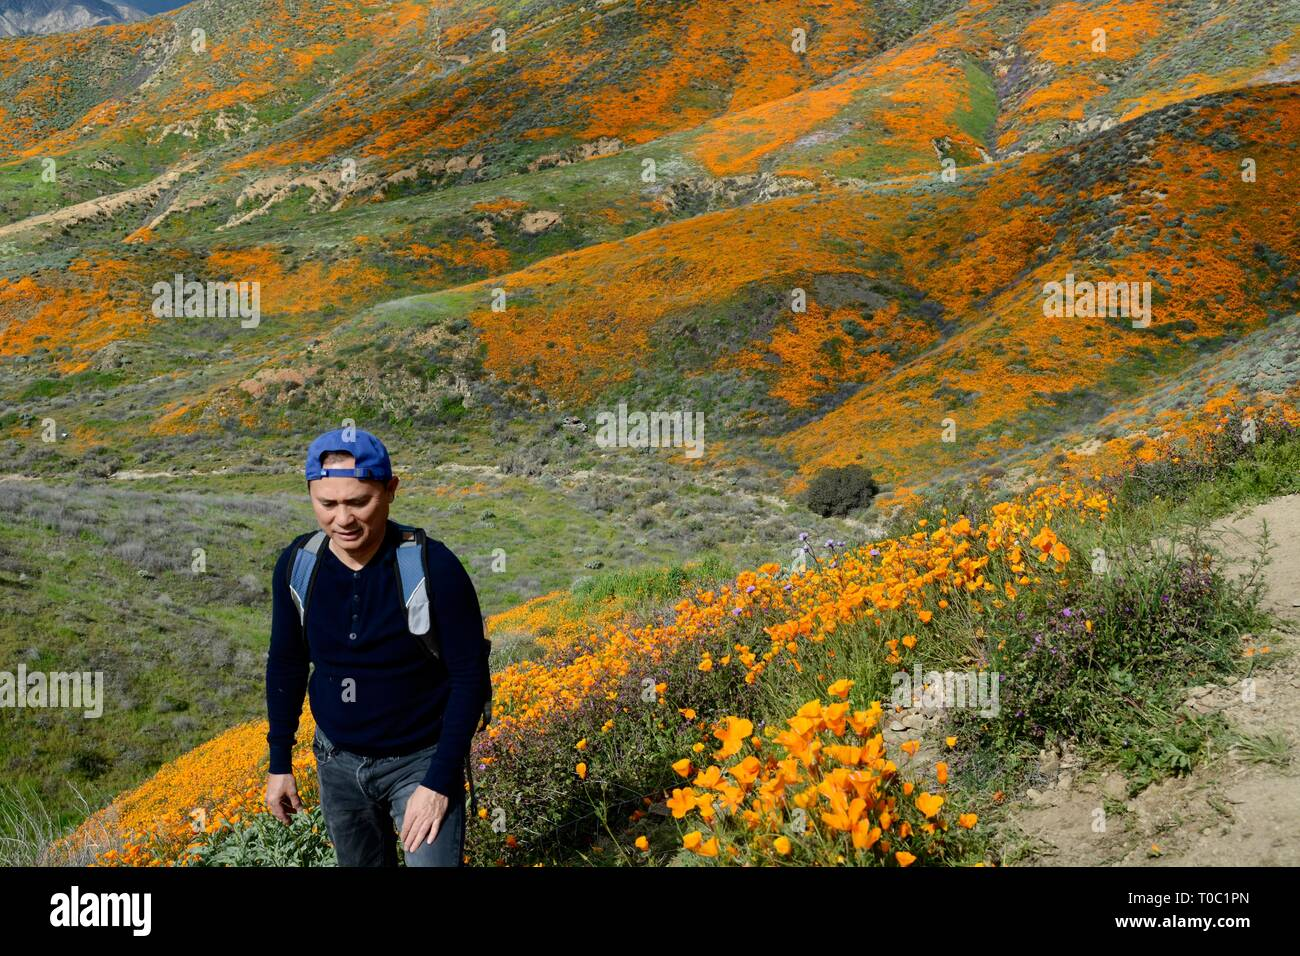 Man, hiking the trails at Walker Canyon, is surrounded by beautiful Golden Poppies during the Super Bloom. The canyon is now closed to all. - Stock Image